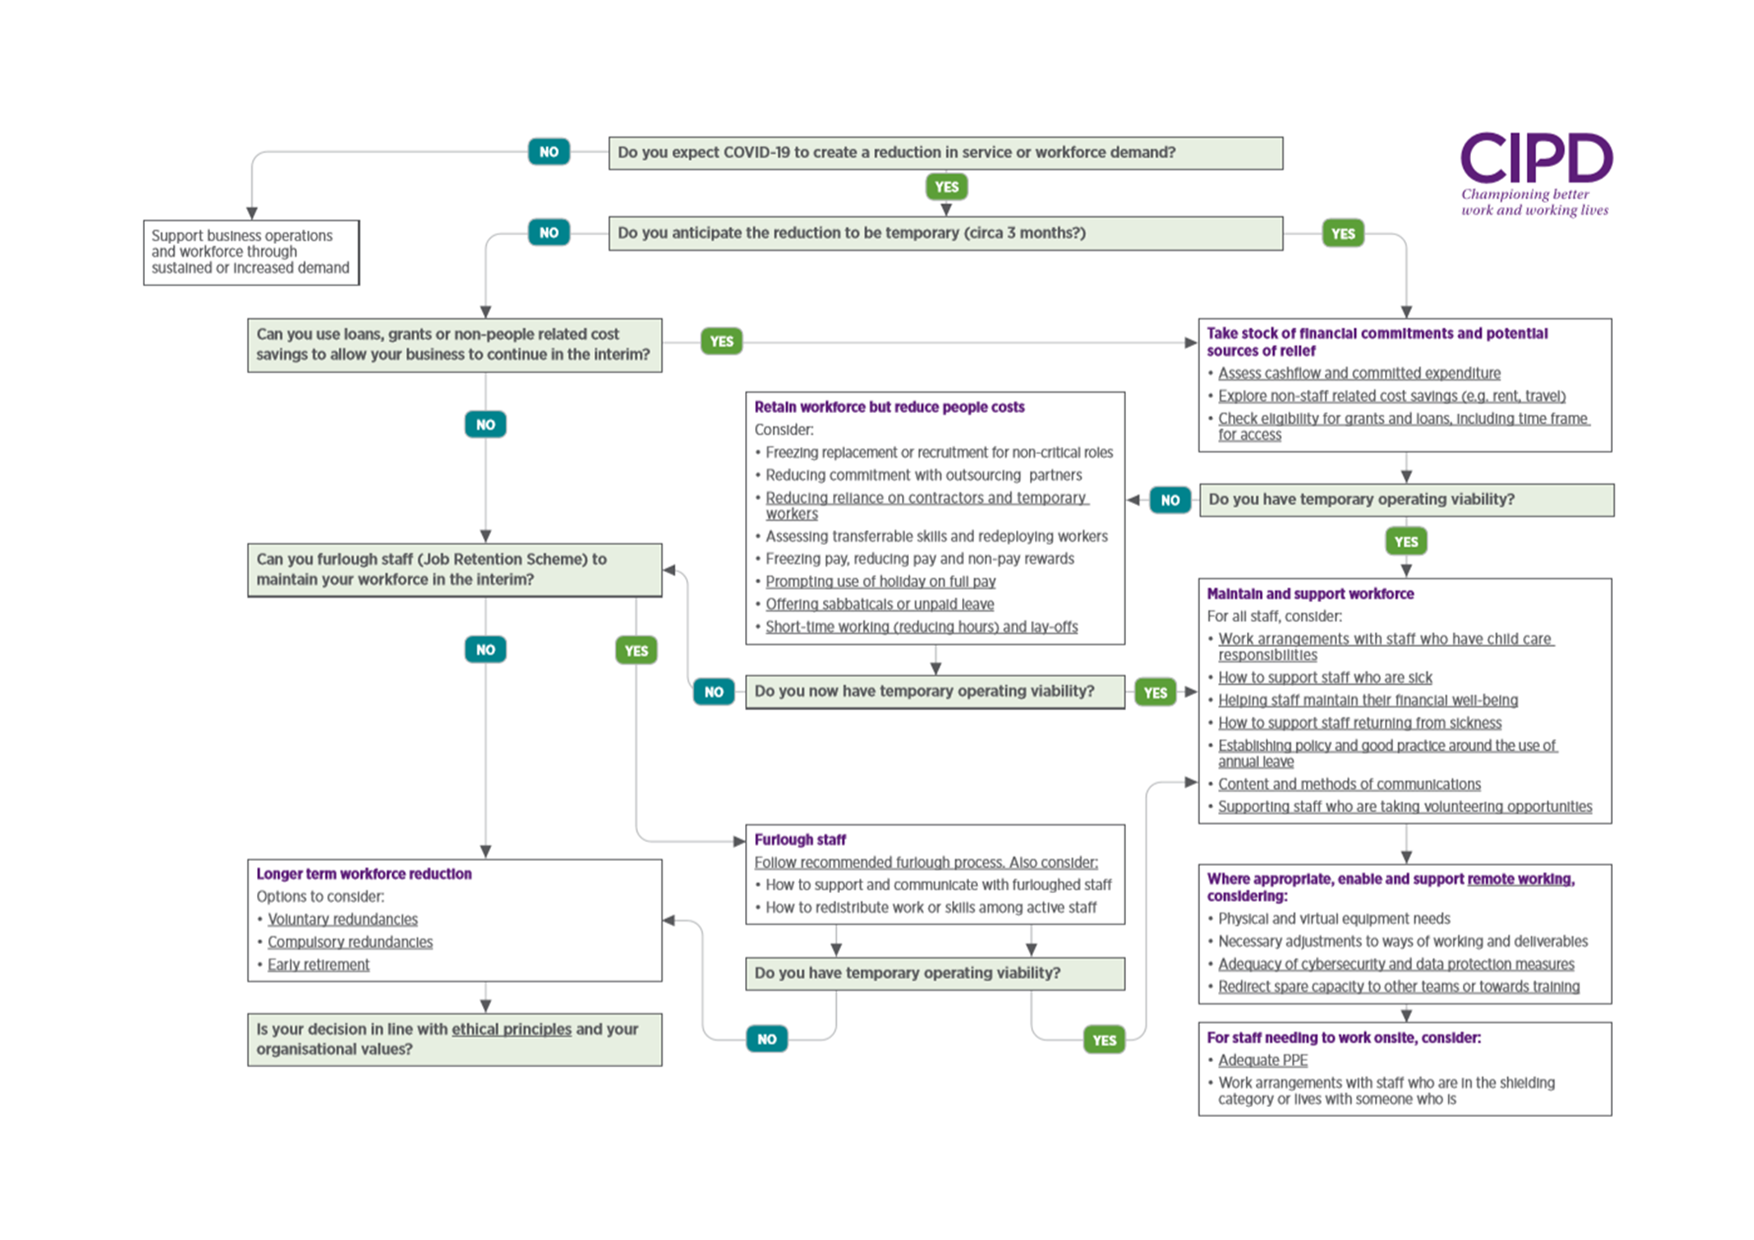 Covid19 decision flowchart published by CIPD Apr20